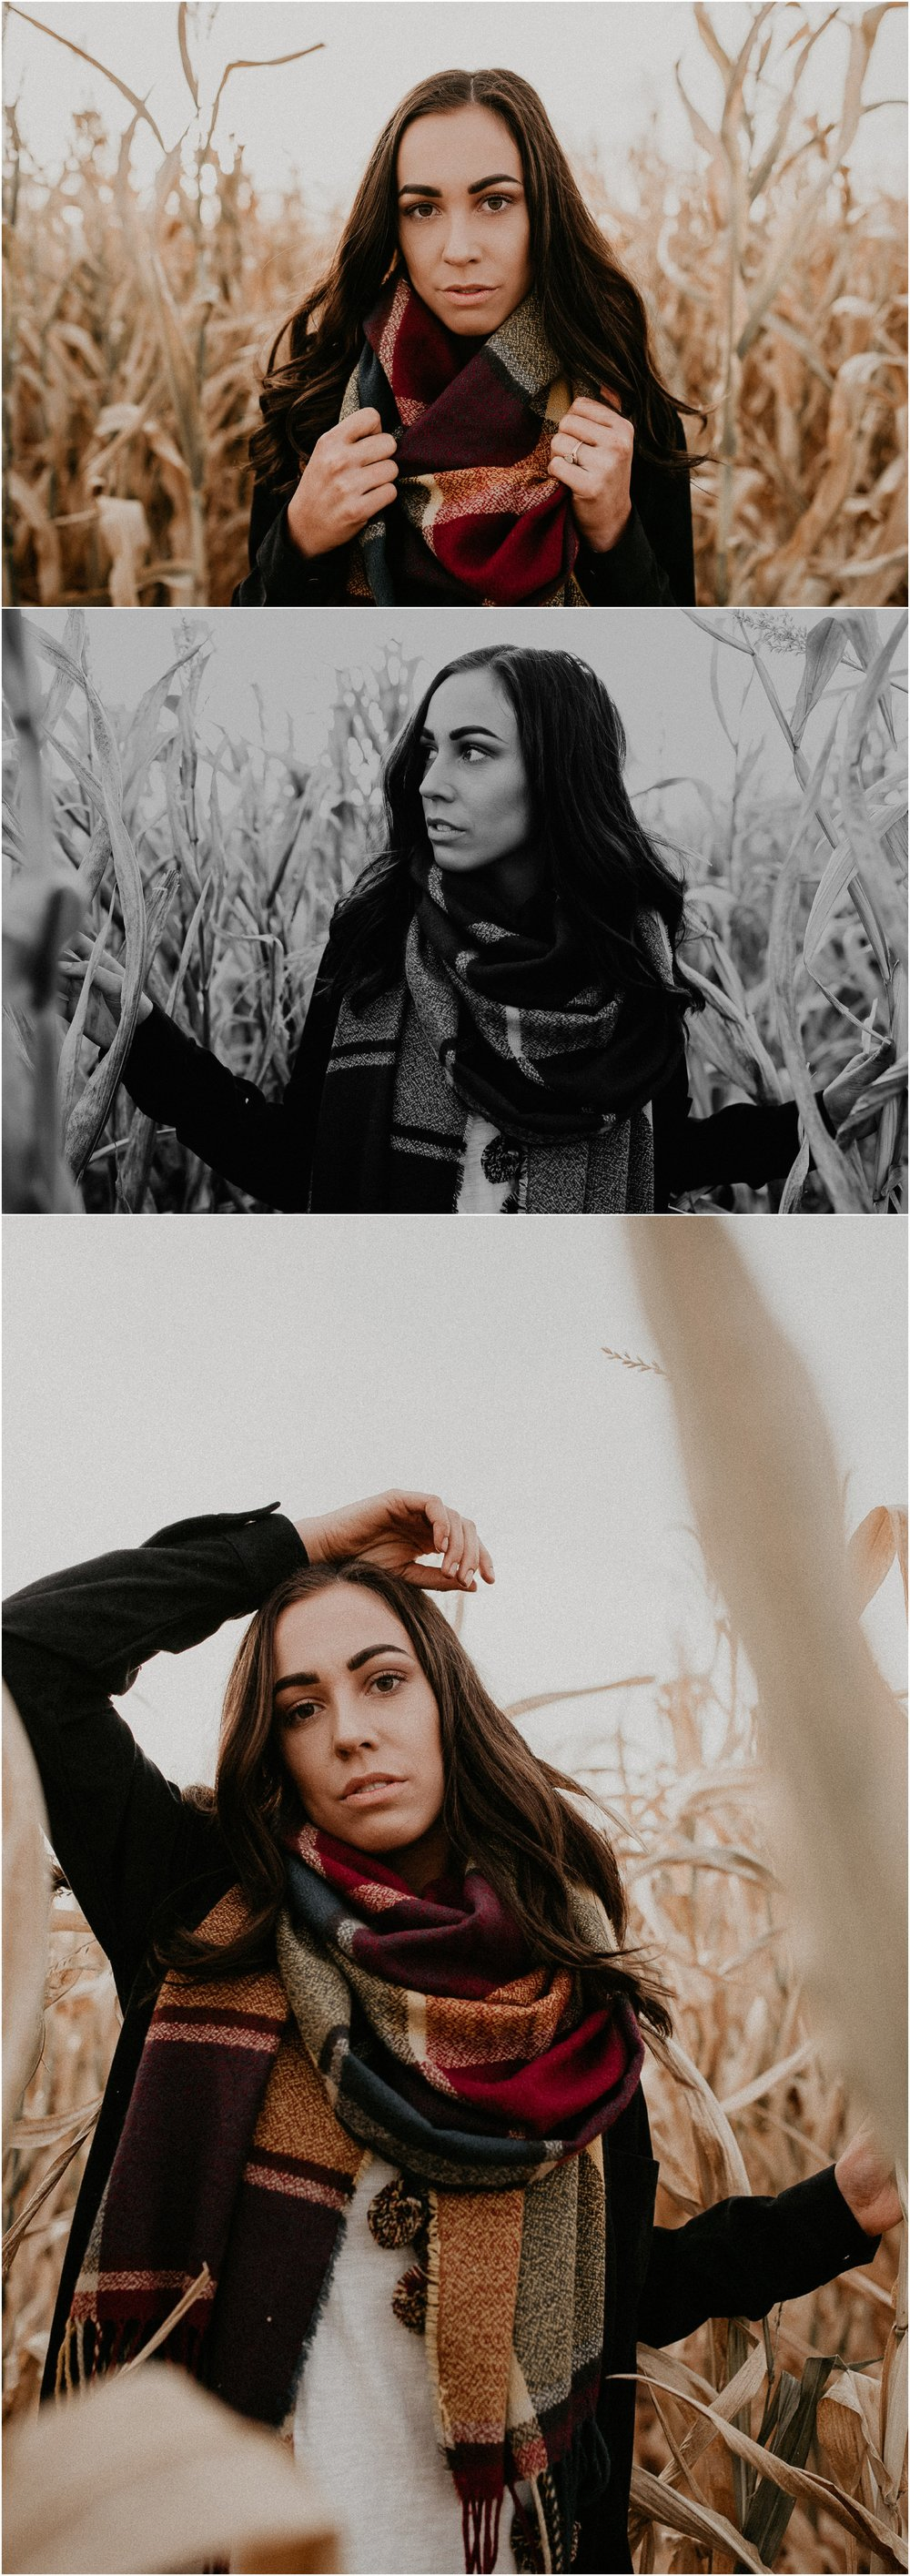 Boise Senior Boudoir Wedding Photographer Makayla Madden Photography Idaho Farmstead Corn Maze Fall Portrait Senior Picture Girl Outfit Ideas Inspiration Plaid Scarf Pumpkin Patch Corn